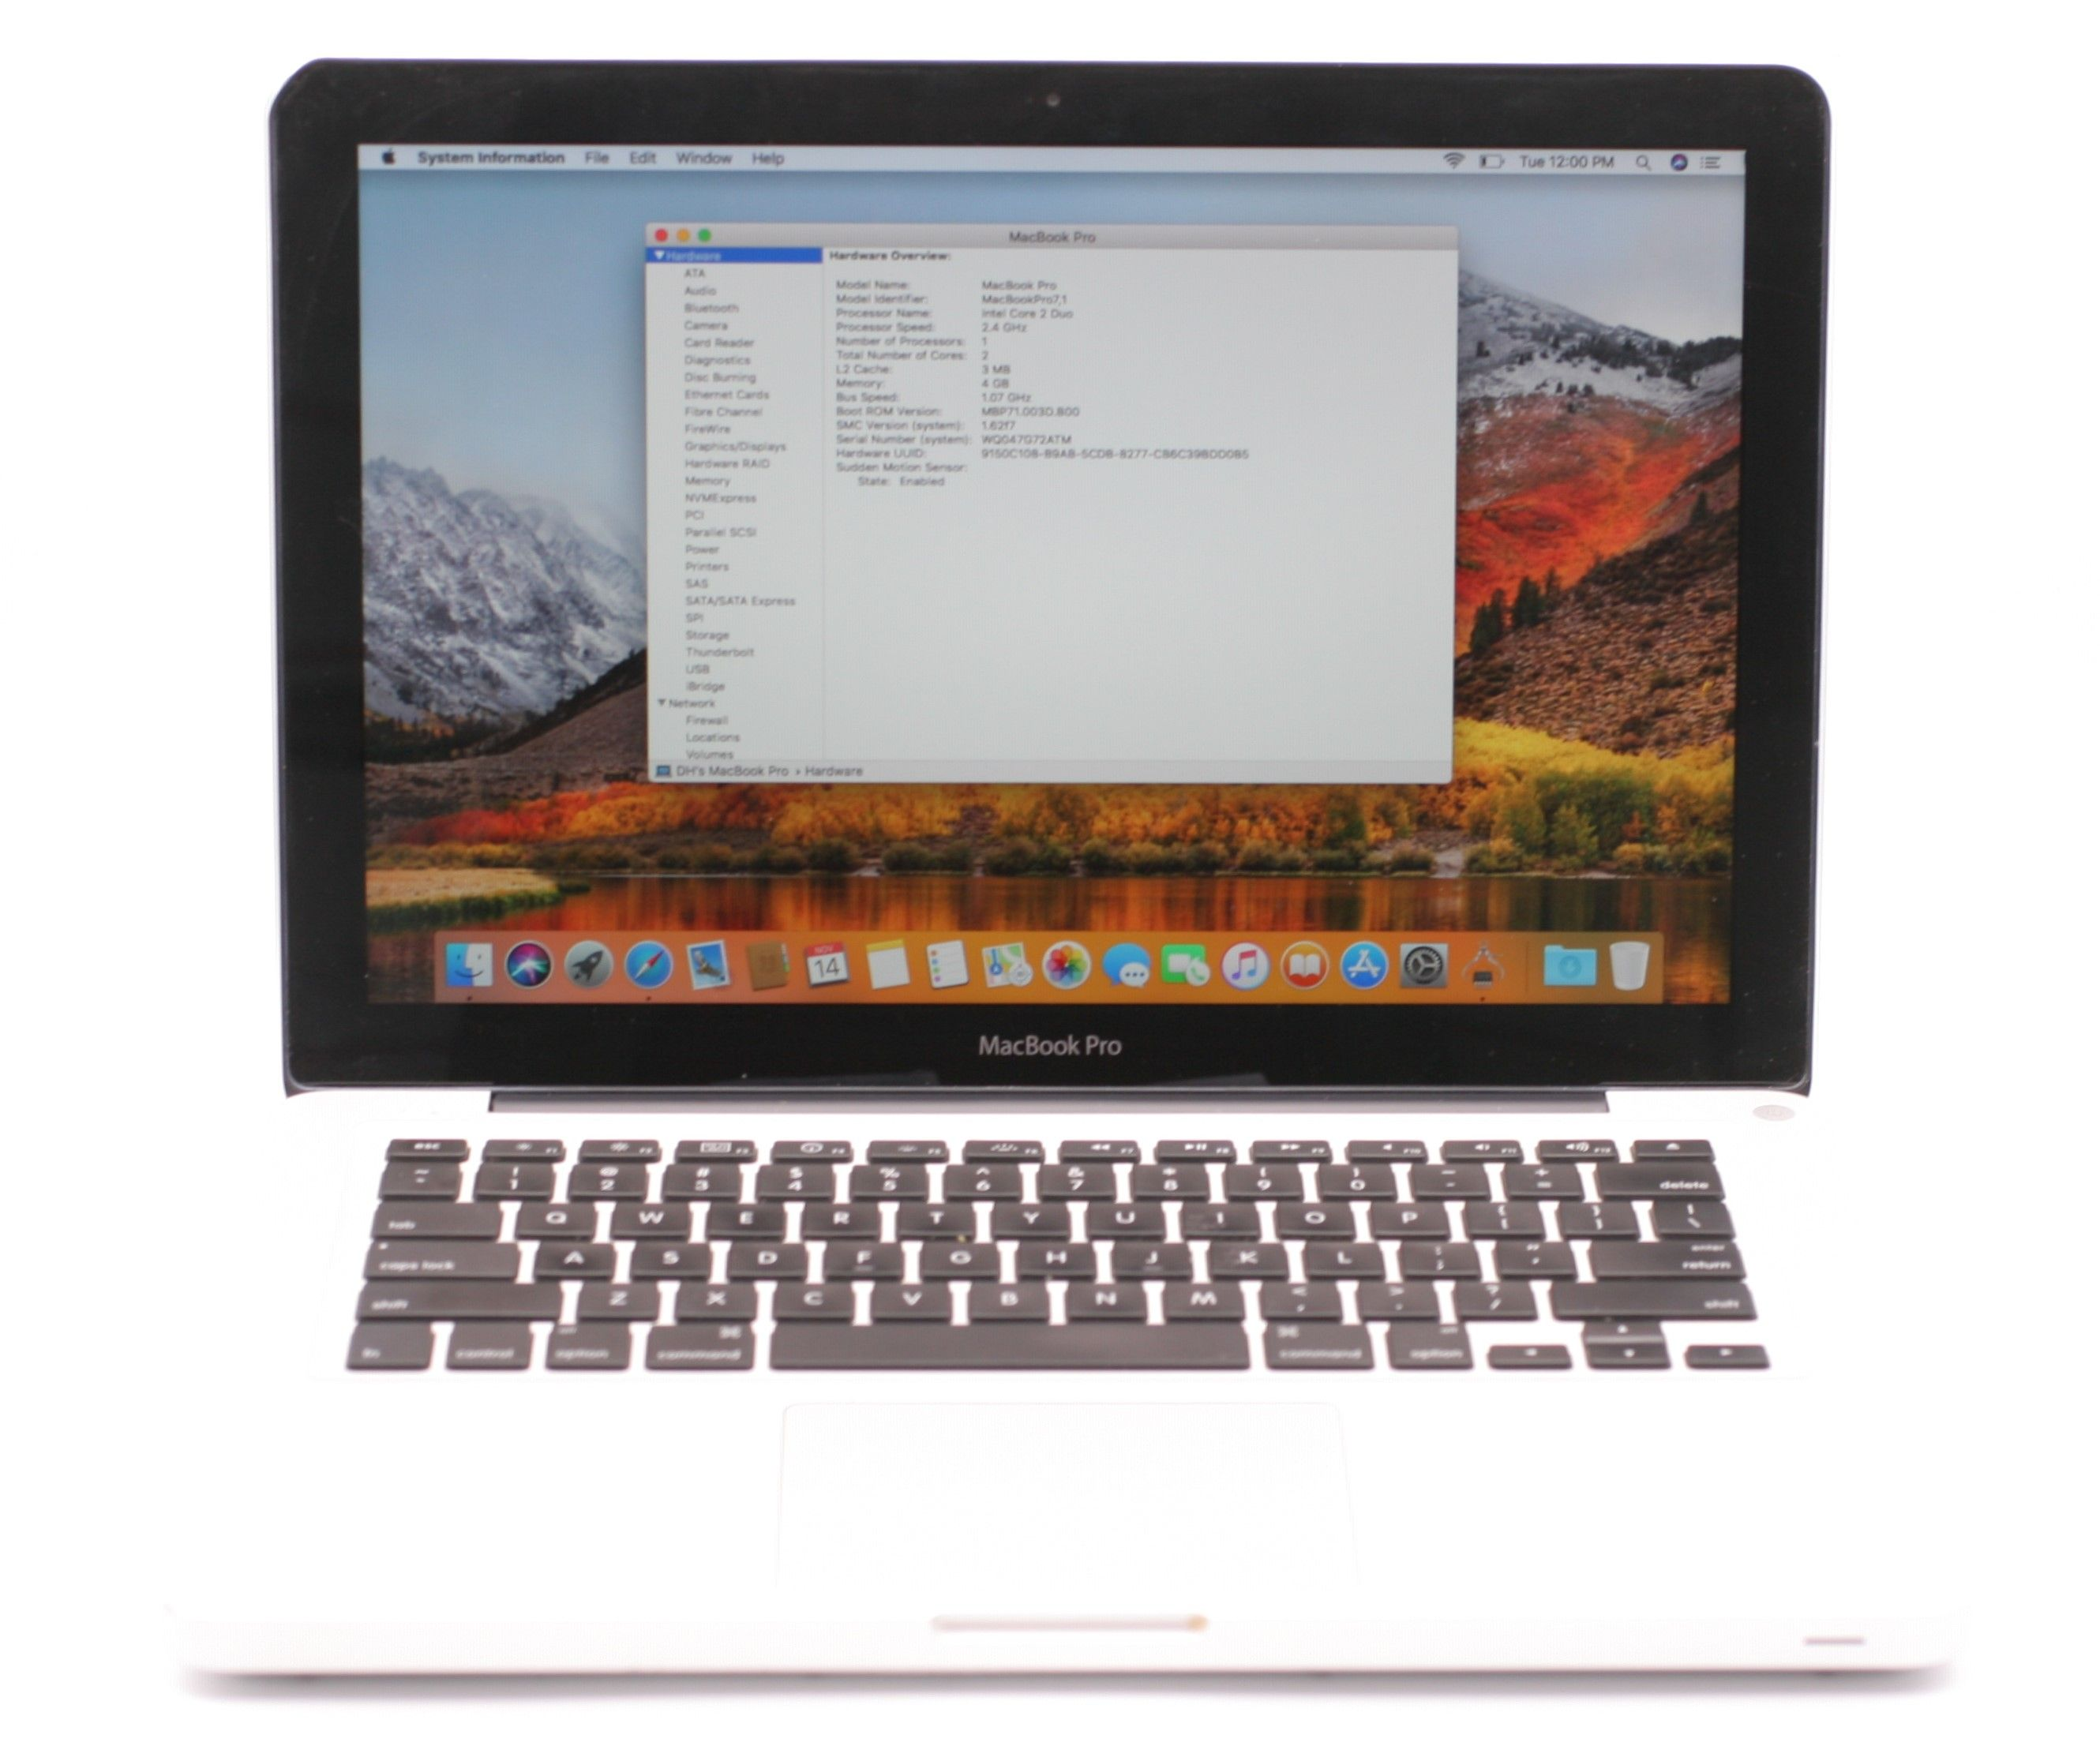 macbook 2.4ghz core 2 duo